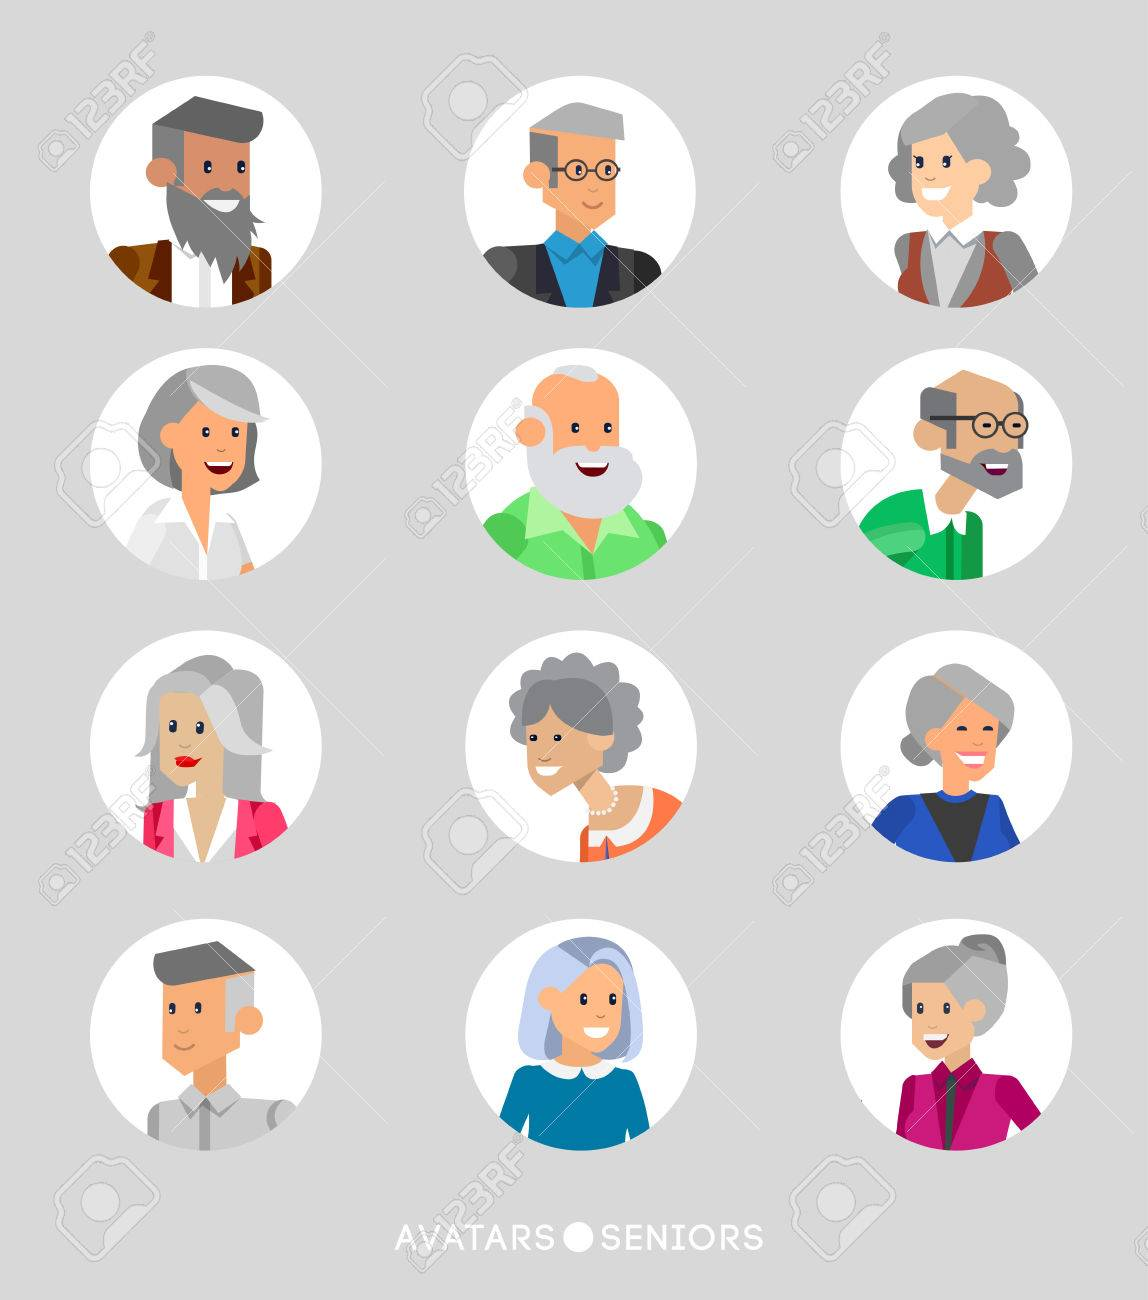 Cute cartoon seniors avatars set male and female seniors old people faces collection